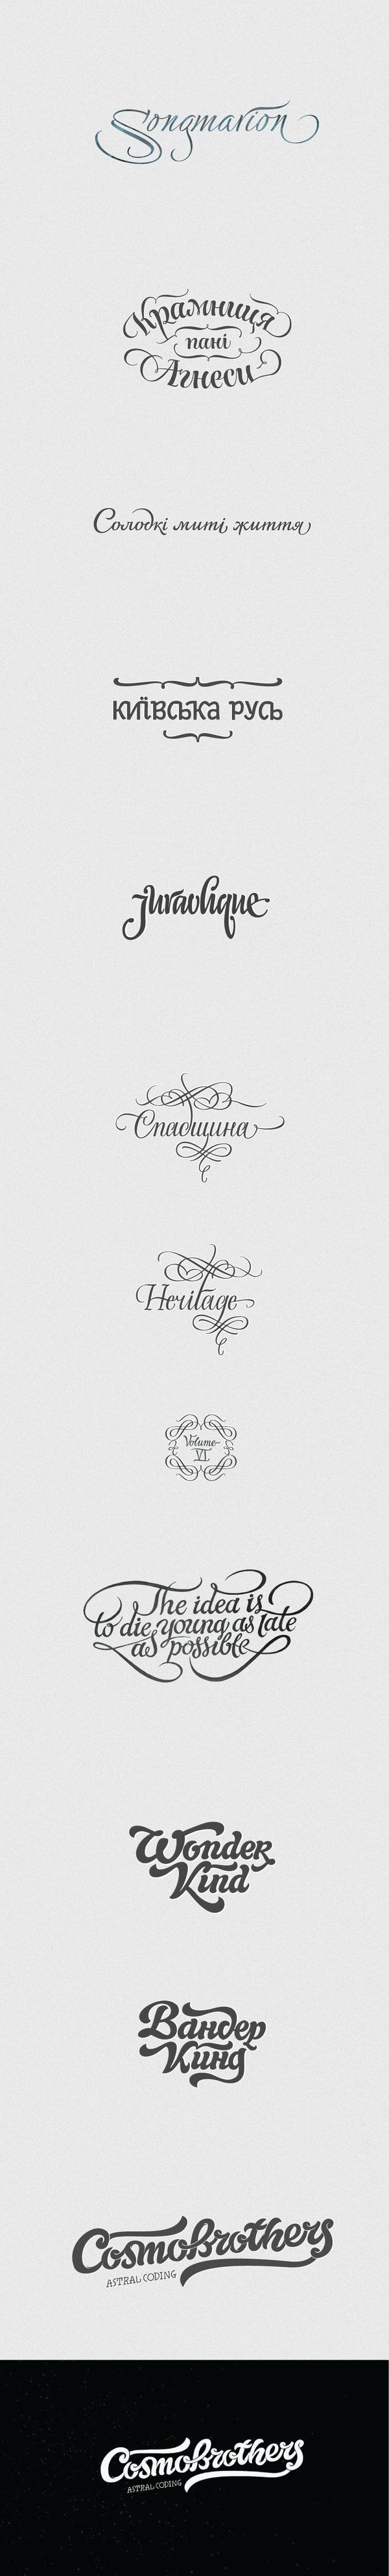 Some logos & letterings 2011-2012 by Vika and Vita Lopukhiny, via Behance